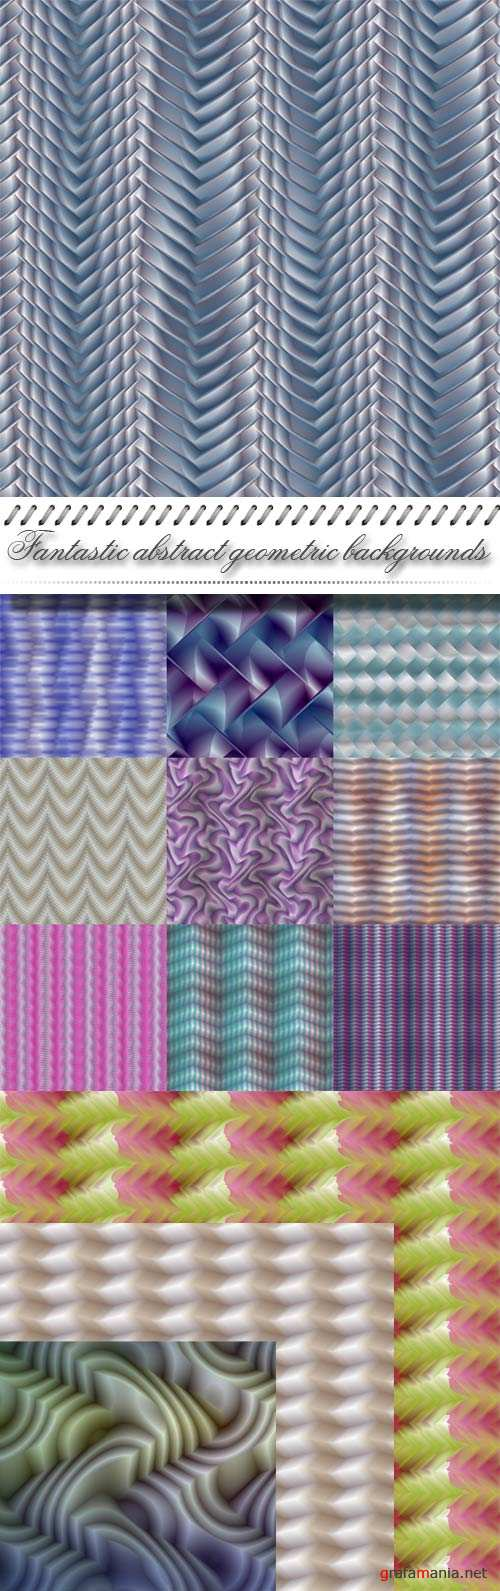 Fantastic abstract geometric backgrounds